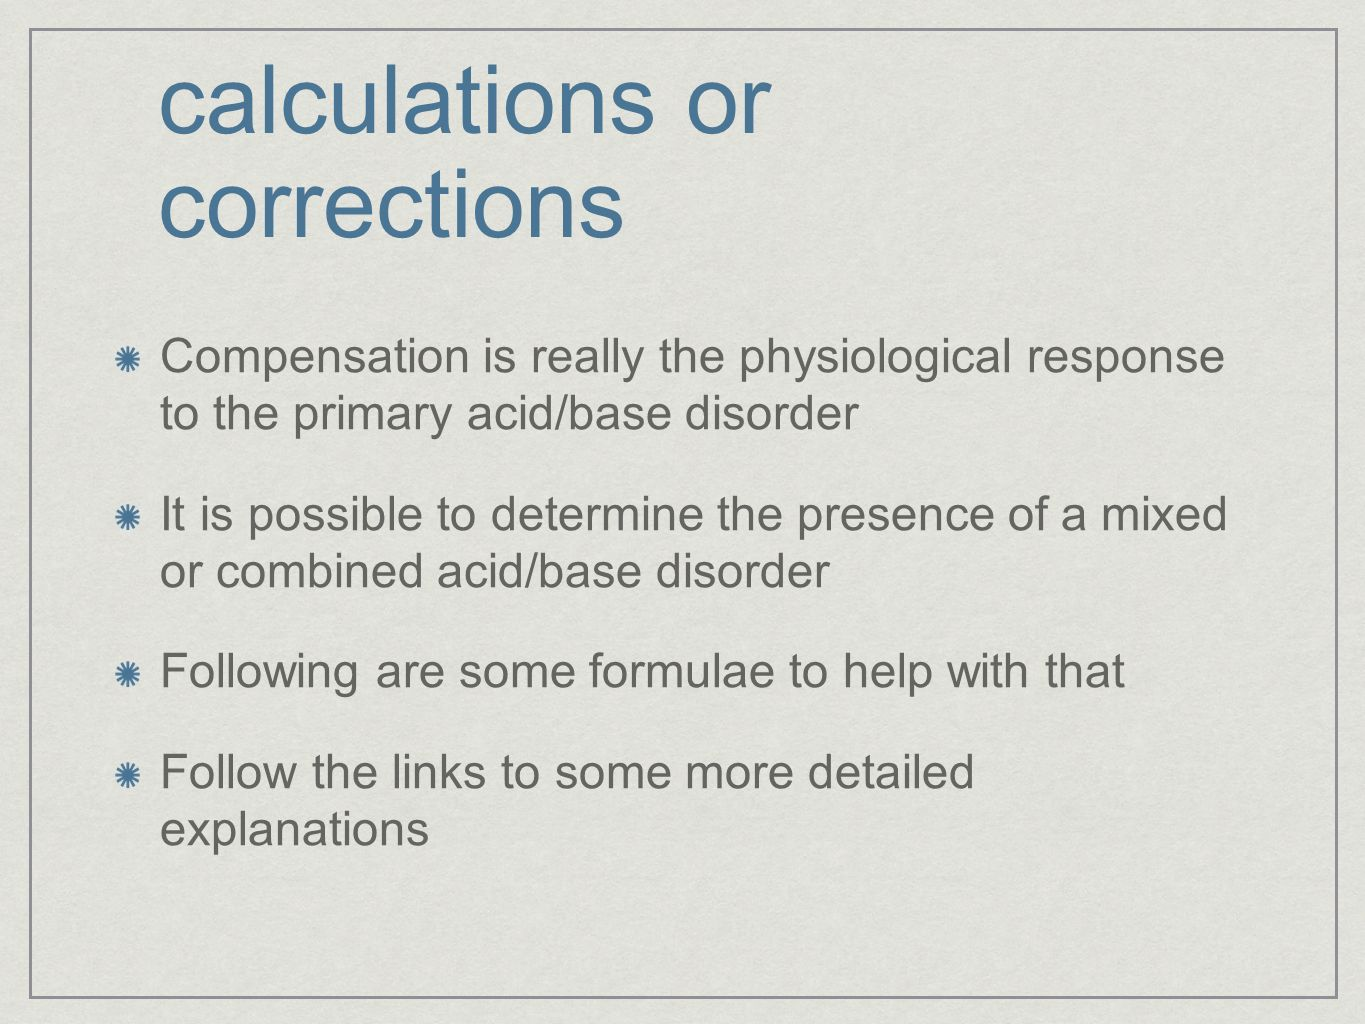 calculations or corrections Compensation is really the physiological response to the primary acid/base disorder It is possible to determine the presen